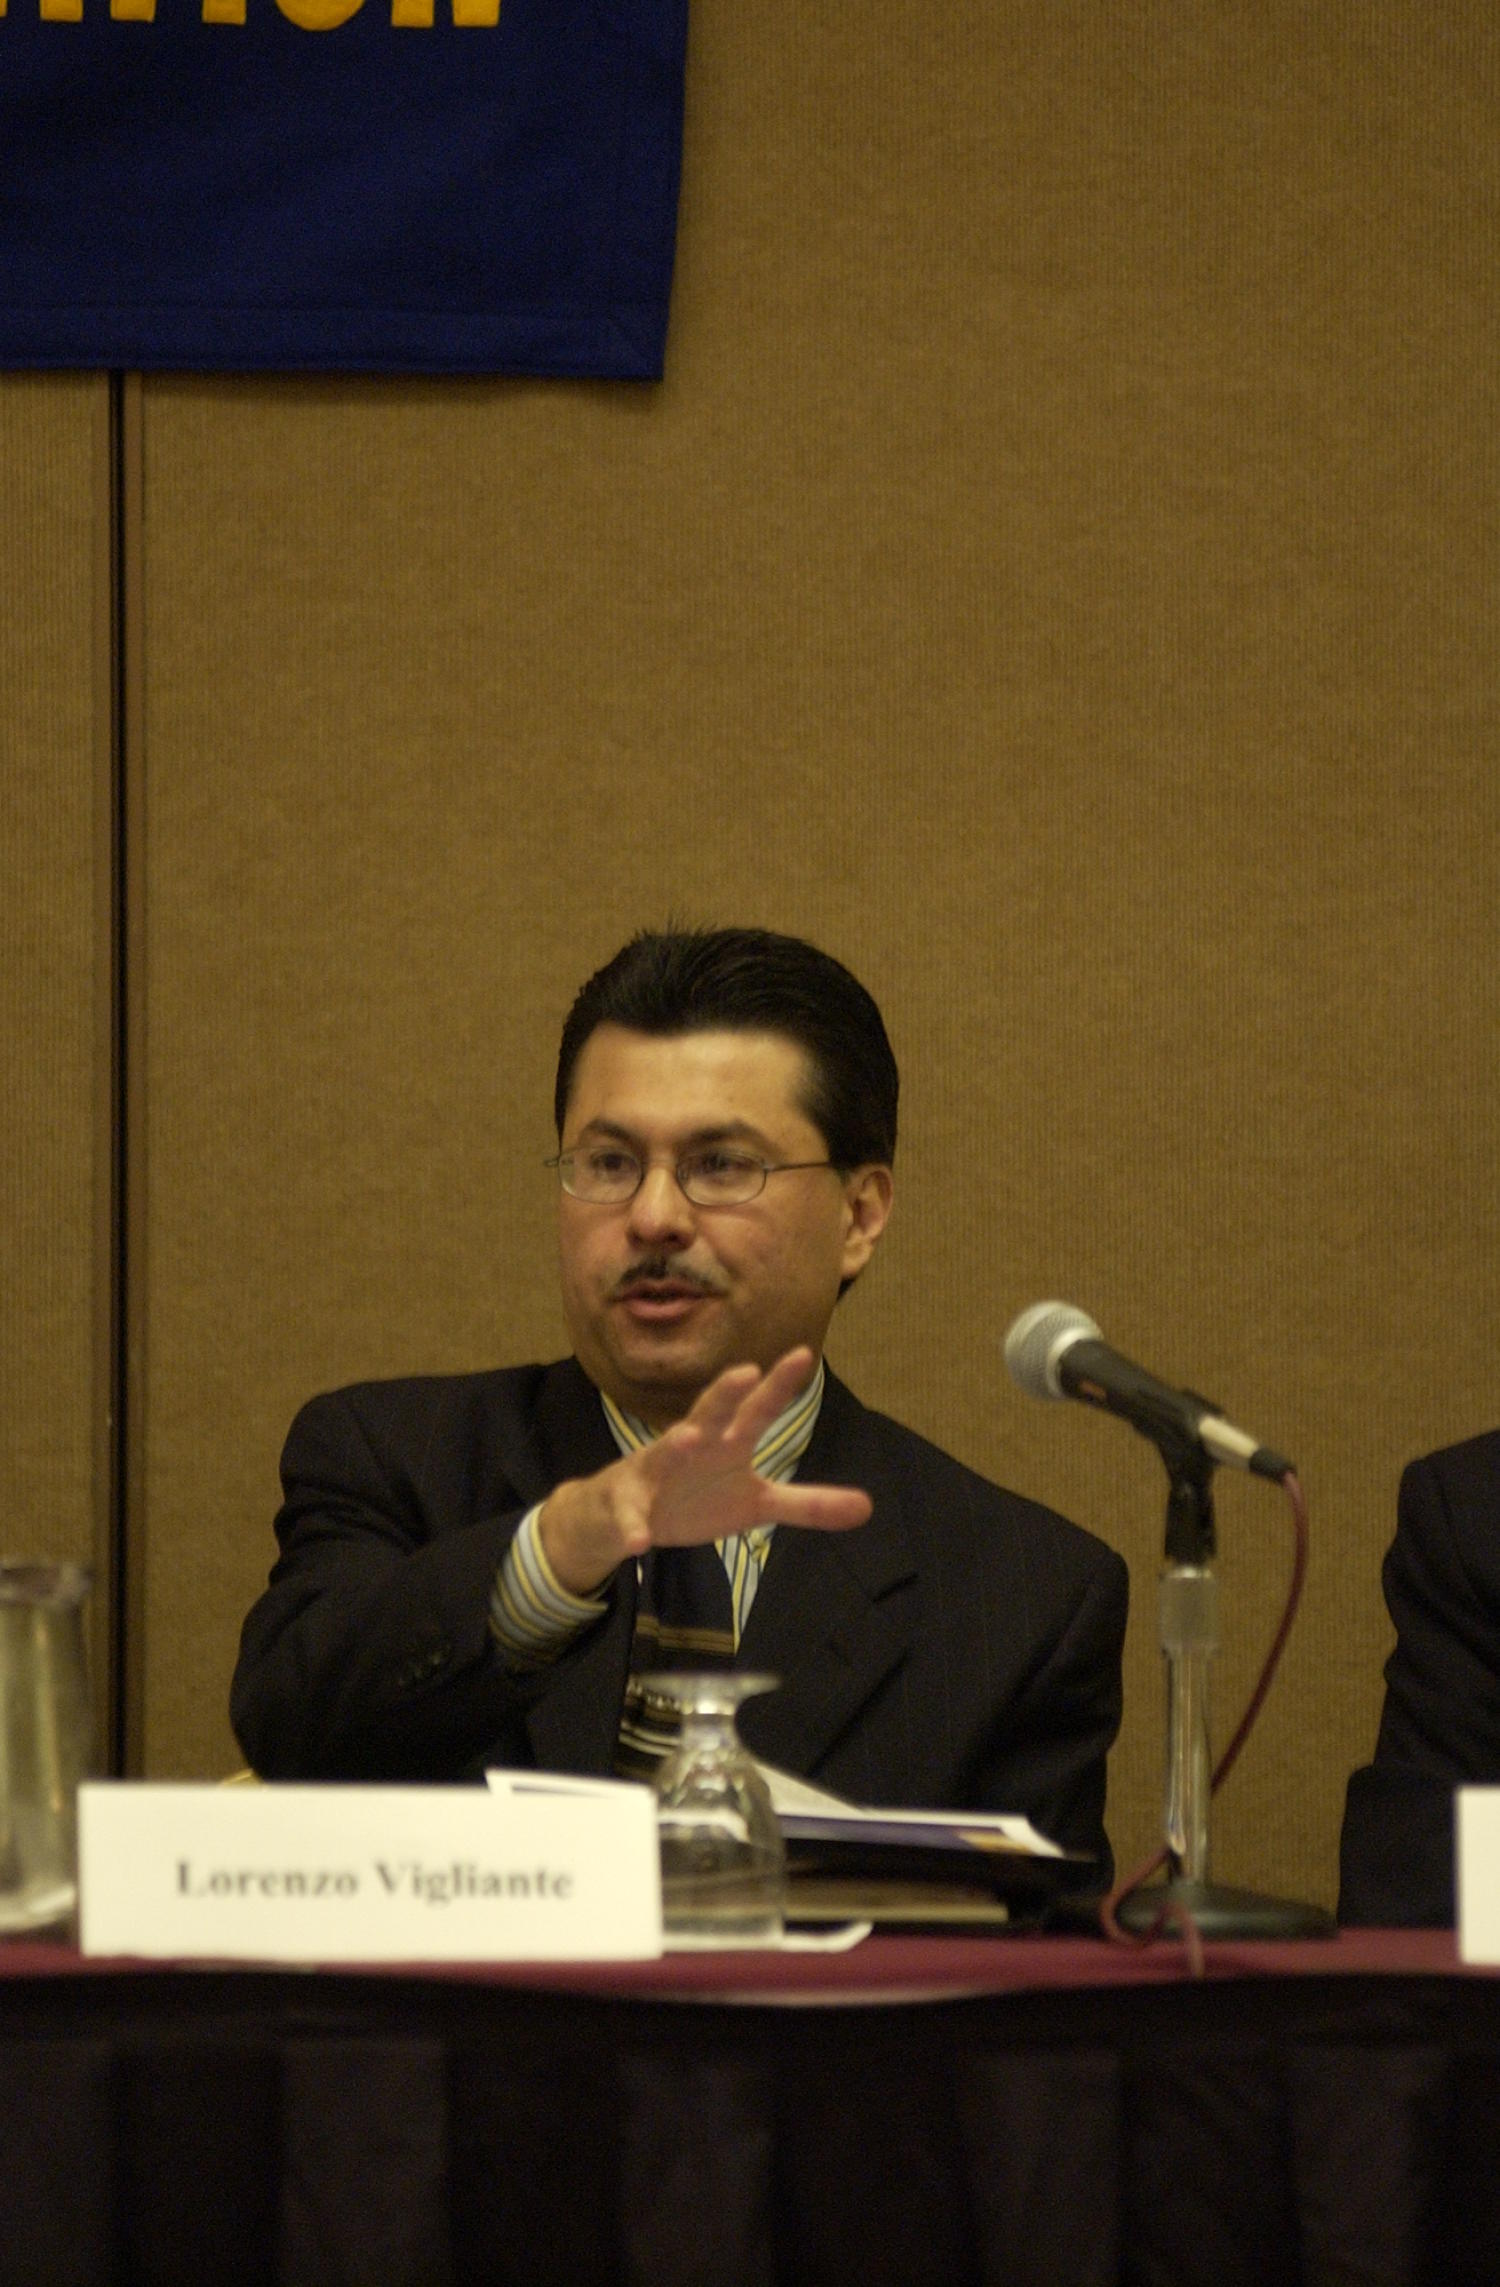 [Lorenzo Vigliante guest speaking at TDNA conference], Photograph of Lorenzo Vigliante in attendance at the 2004 Texas Daily News Association annual conference held in Corpus Christi. Vigliante is seen seated behind a table and in front of a microphone as he is a guest speaker at the conference.,